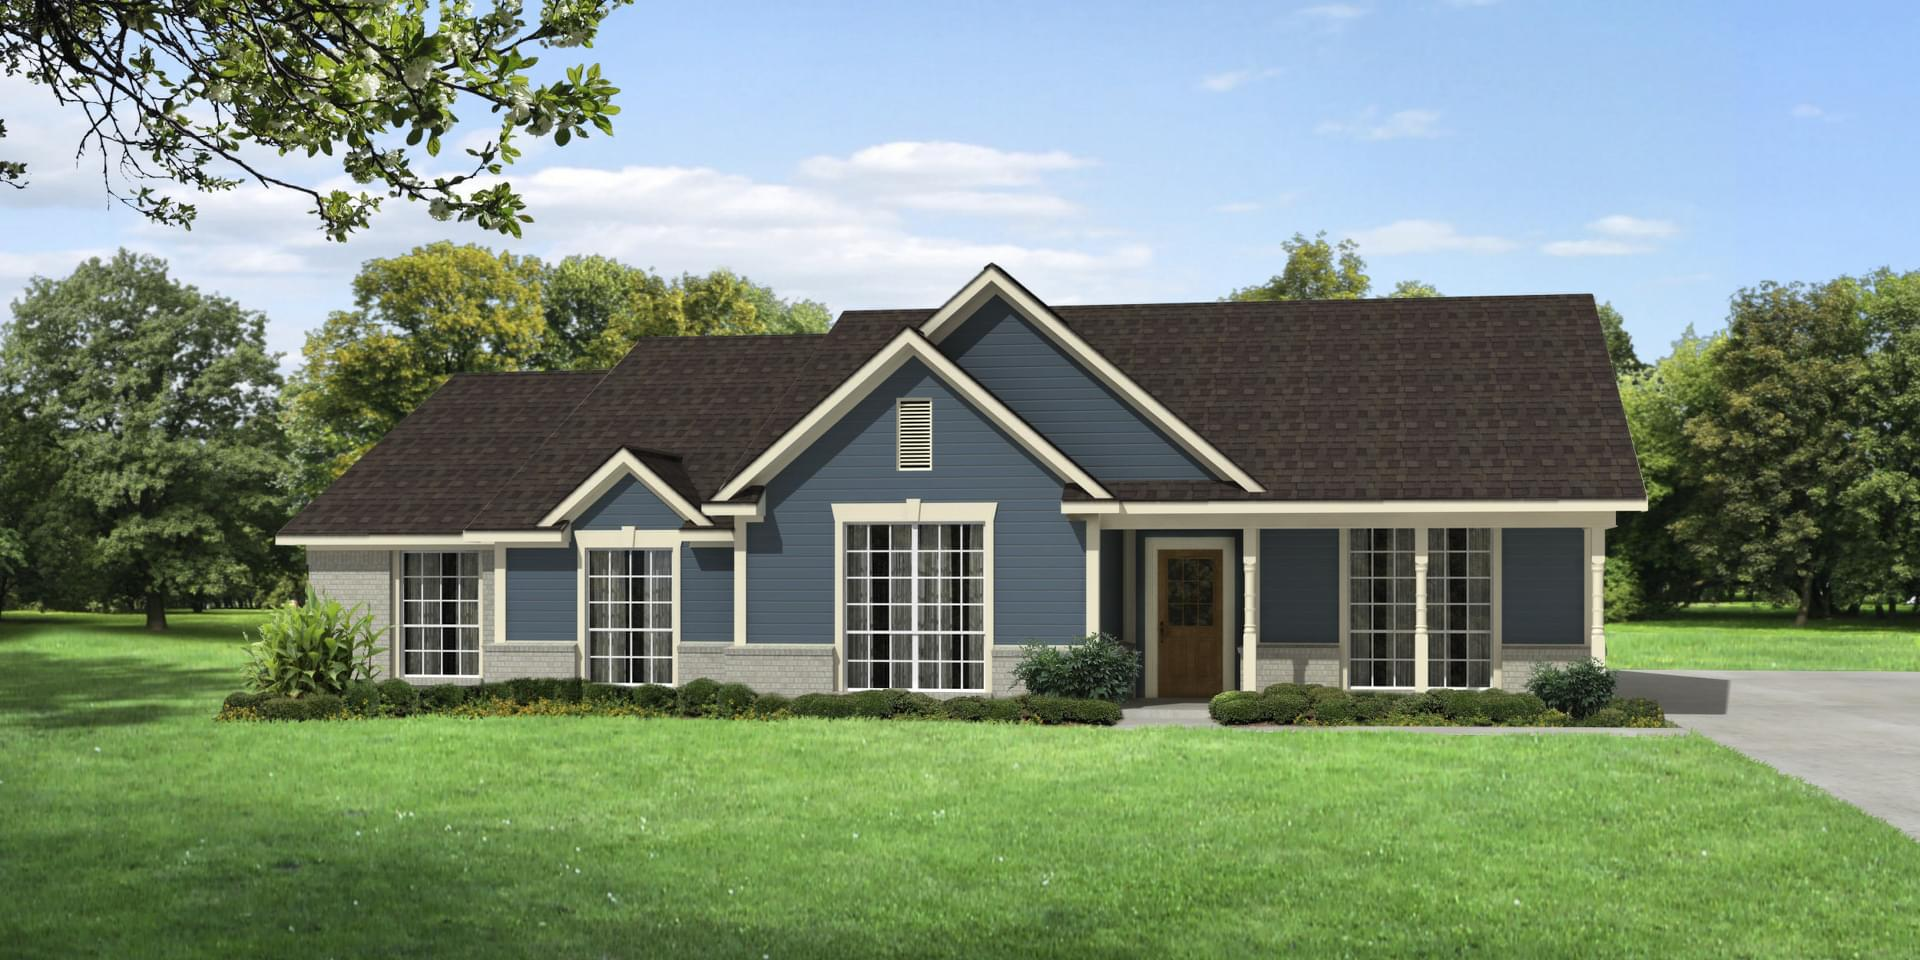 The Navarro Custom Home Plan from Tilson Homes